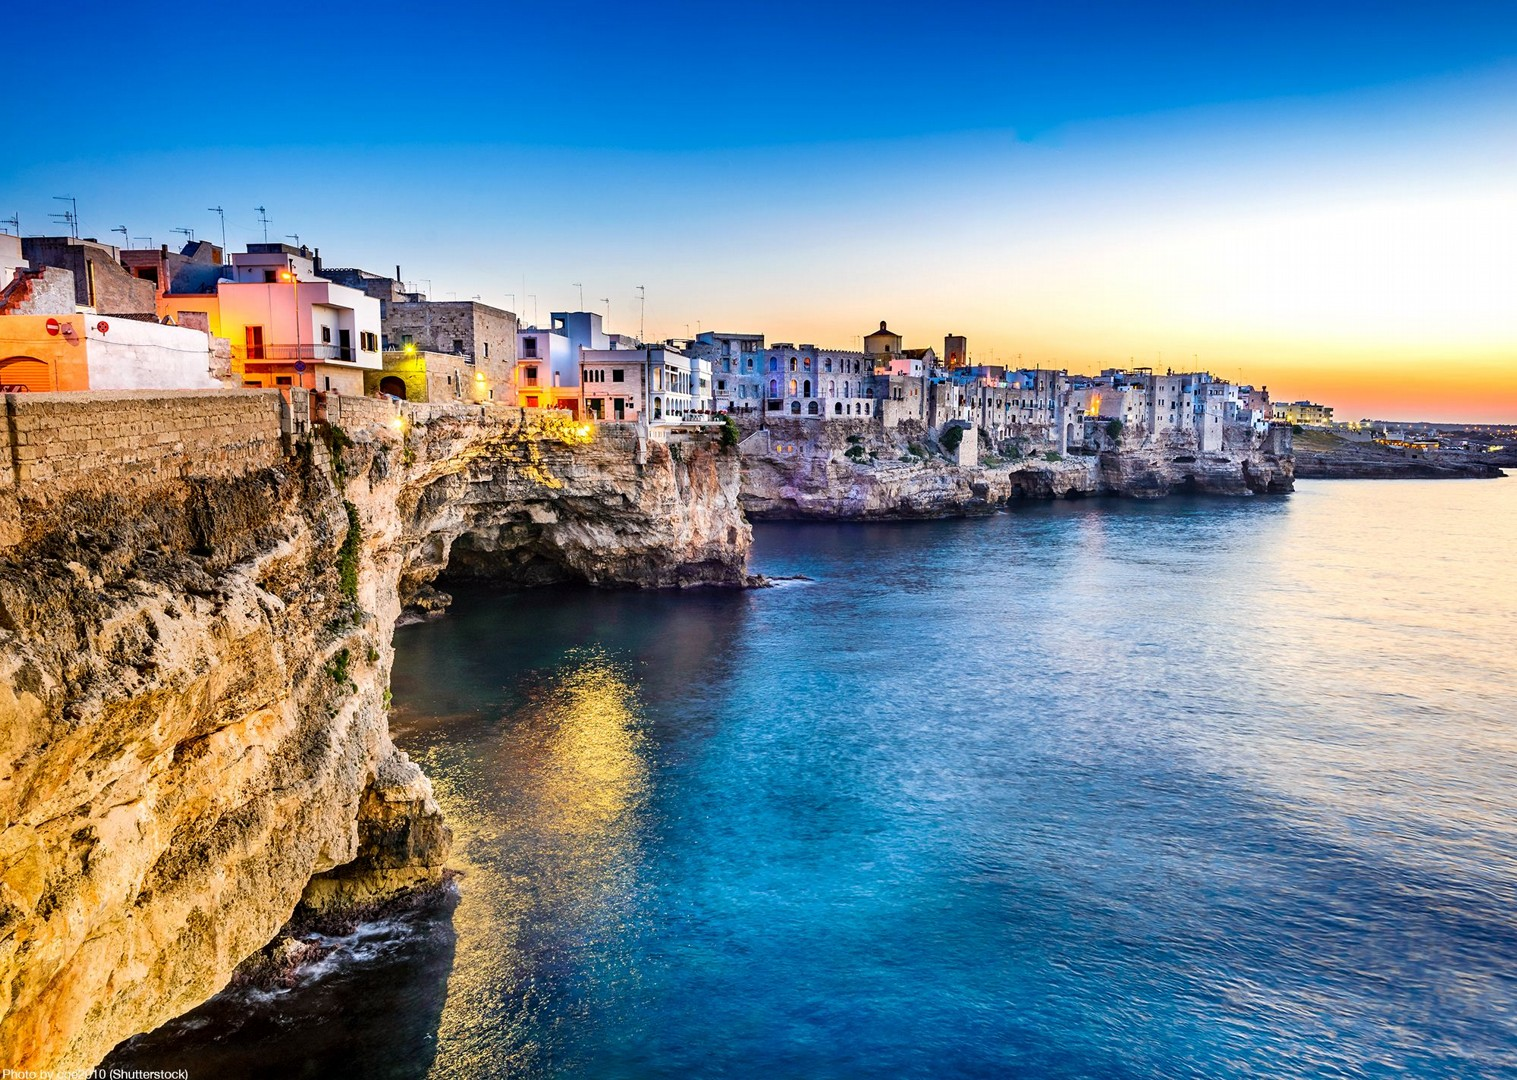 shutterstock_488694136.jpg - Italy - Puglia - Guided Leisure Cycling Holiday - Leisure Cycling